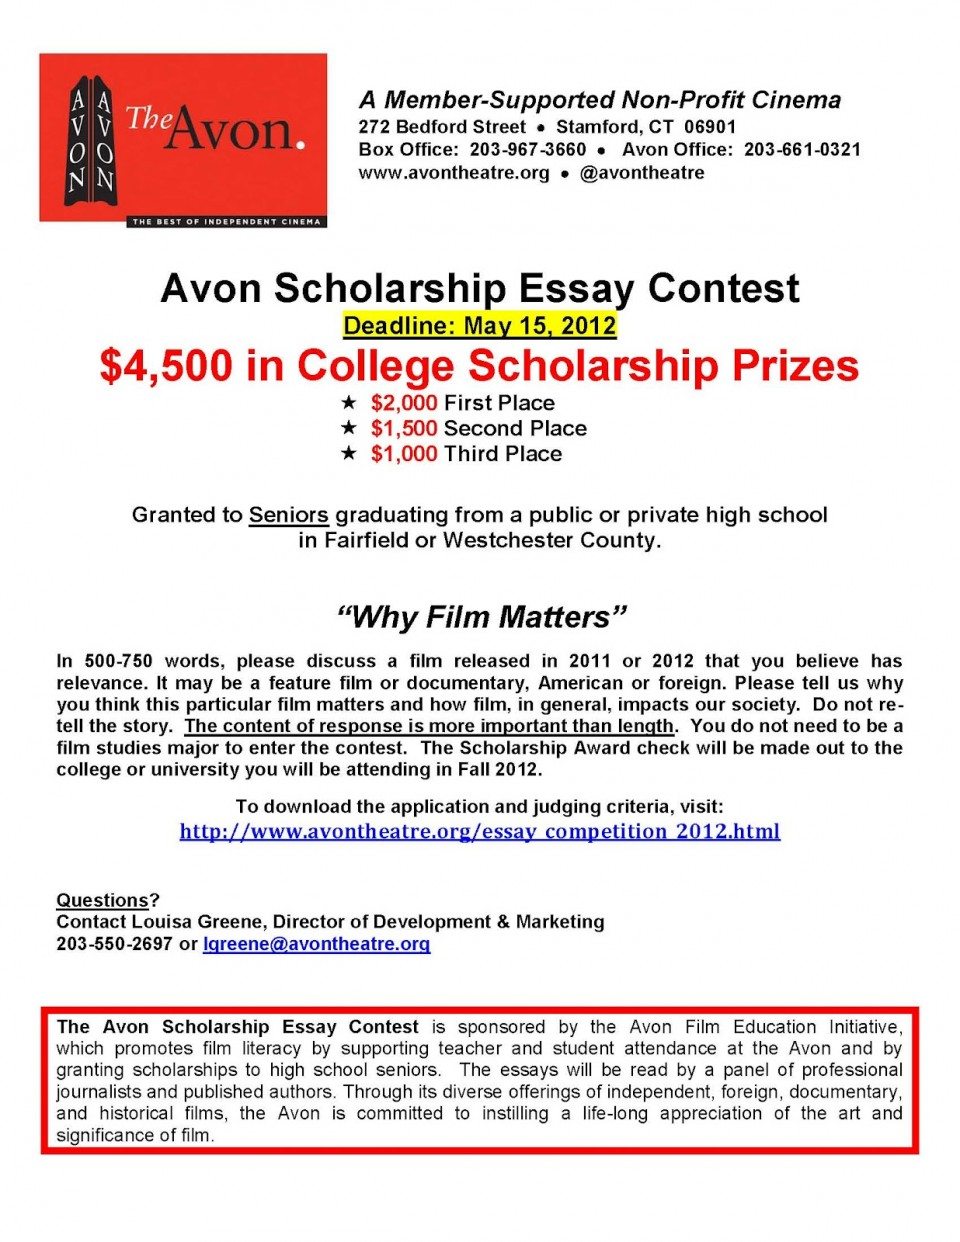 002 No Essay Collegeip Prowler Freeips For High School Seniors Avonscholarshipessaycontest2012 In Texas California Class Of Short Example Wondrous Scholarship Scholarships Freshman 2019 960